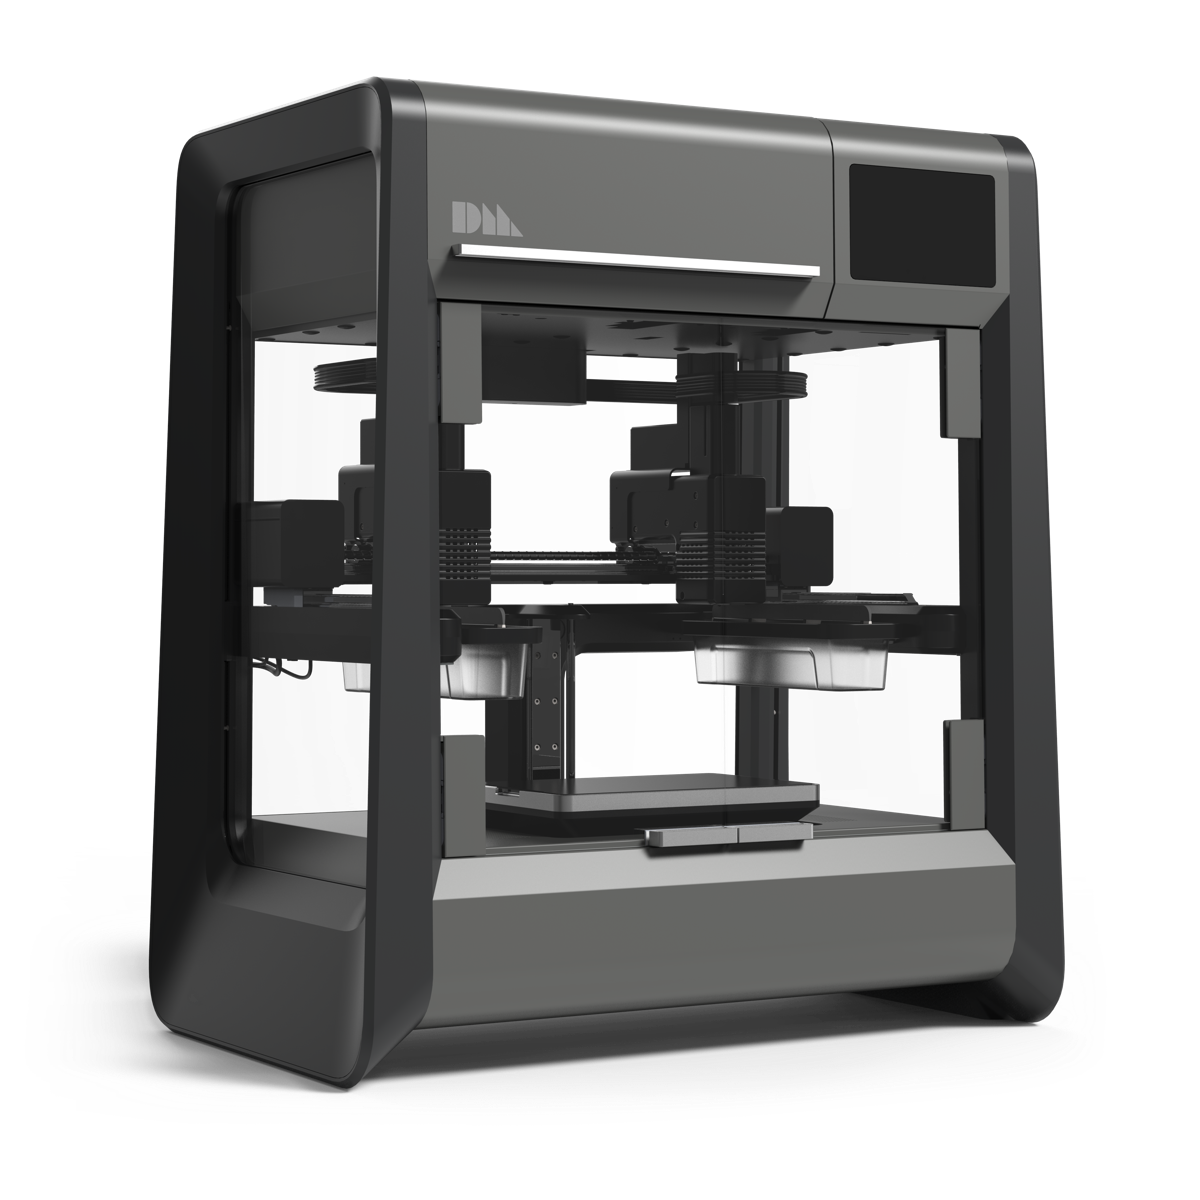 The Desktop Metal studio printer. Image via Desktop Metal.